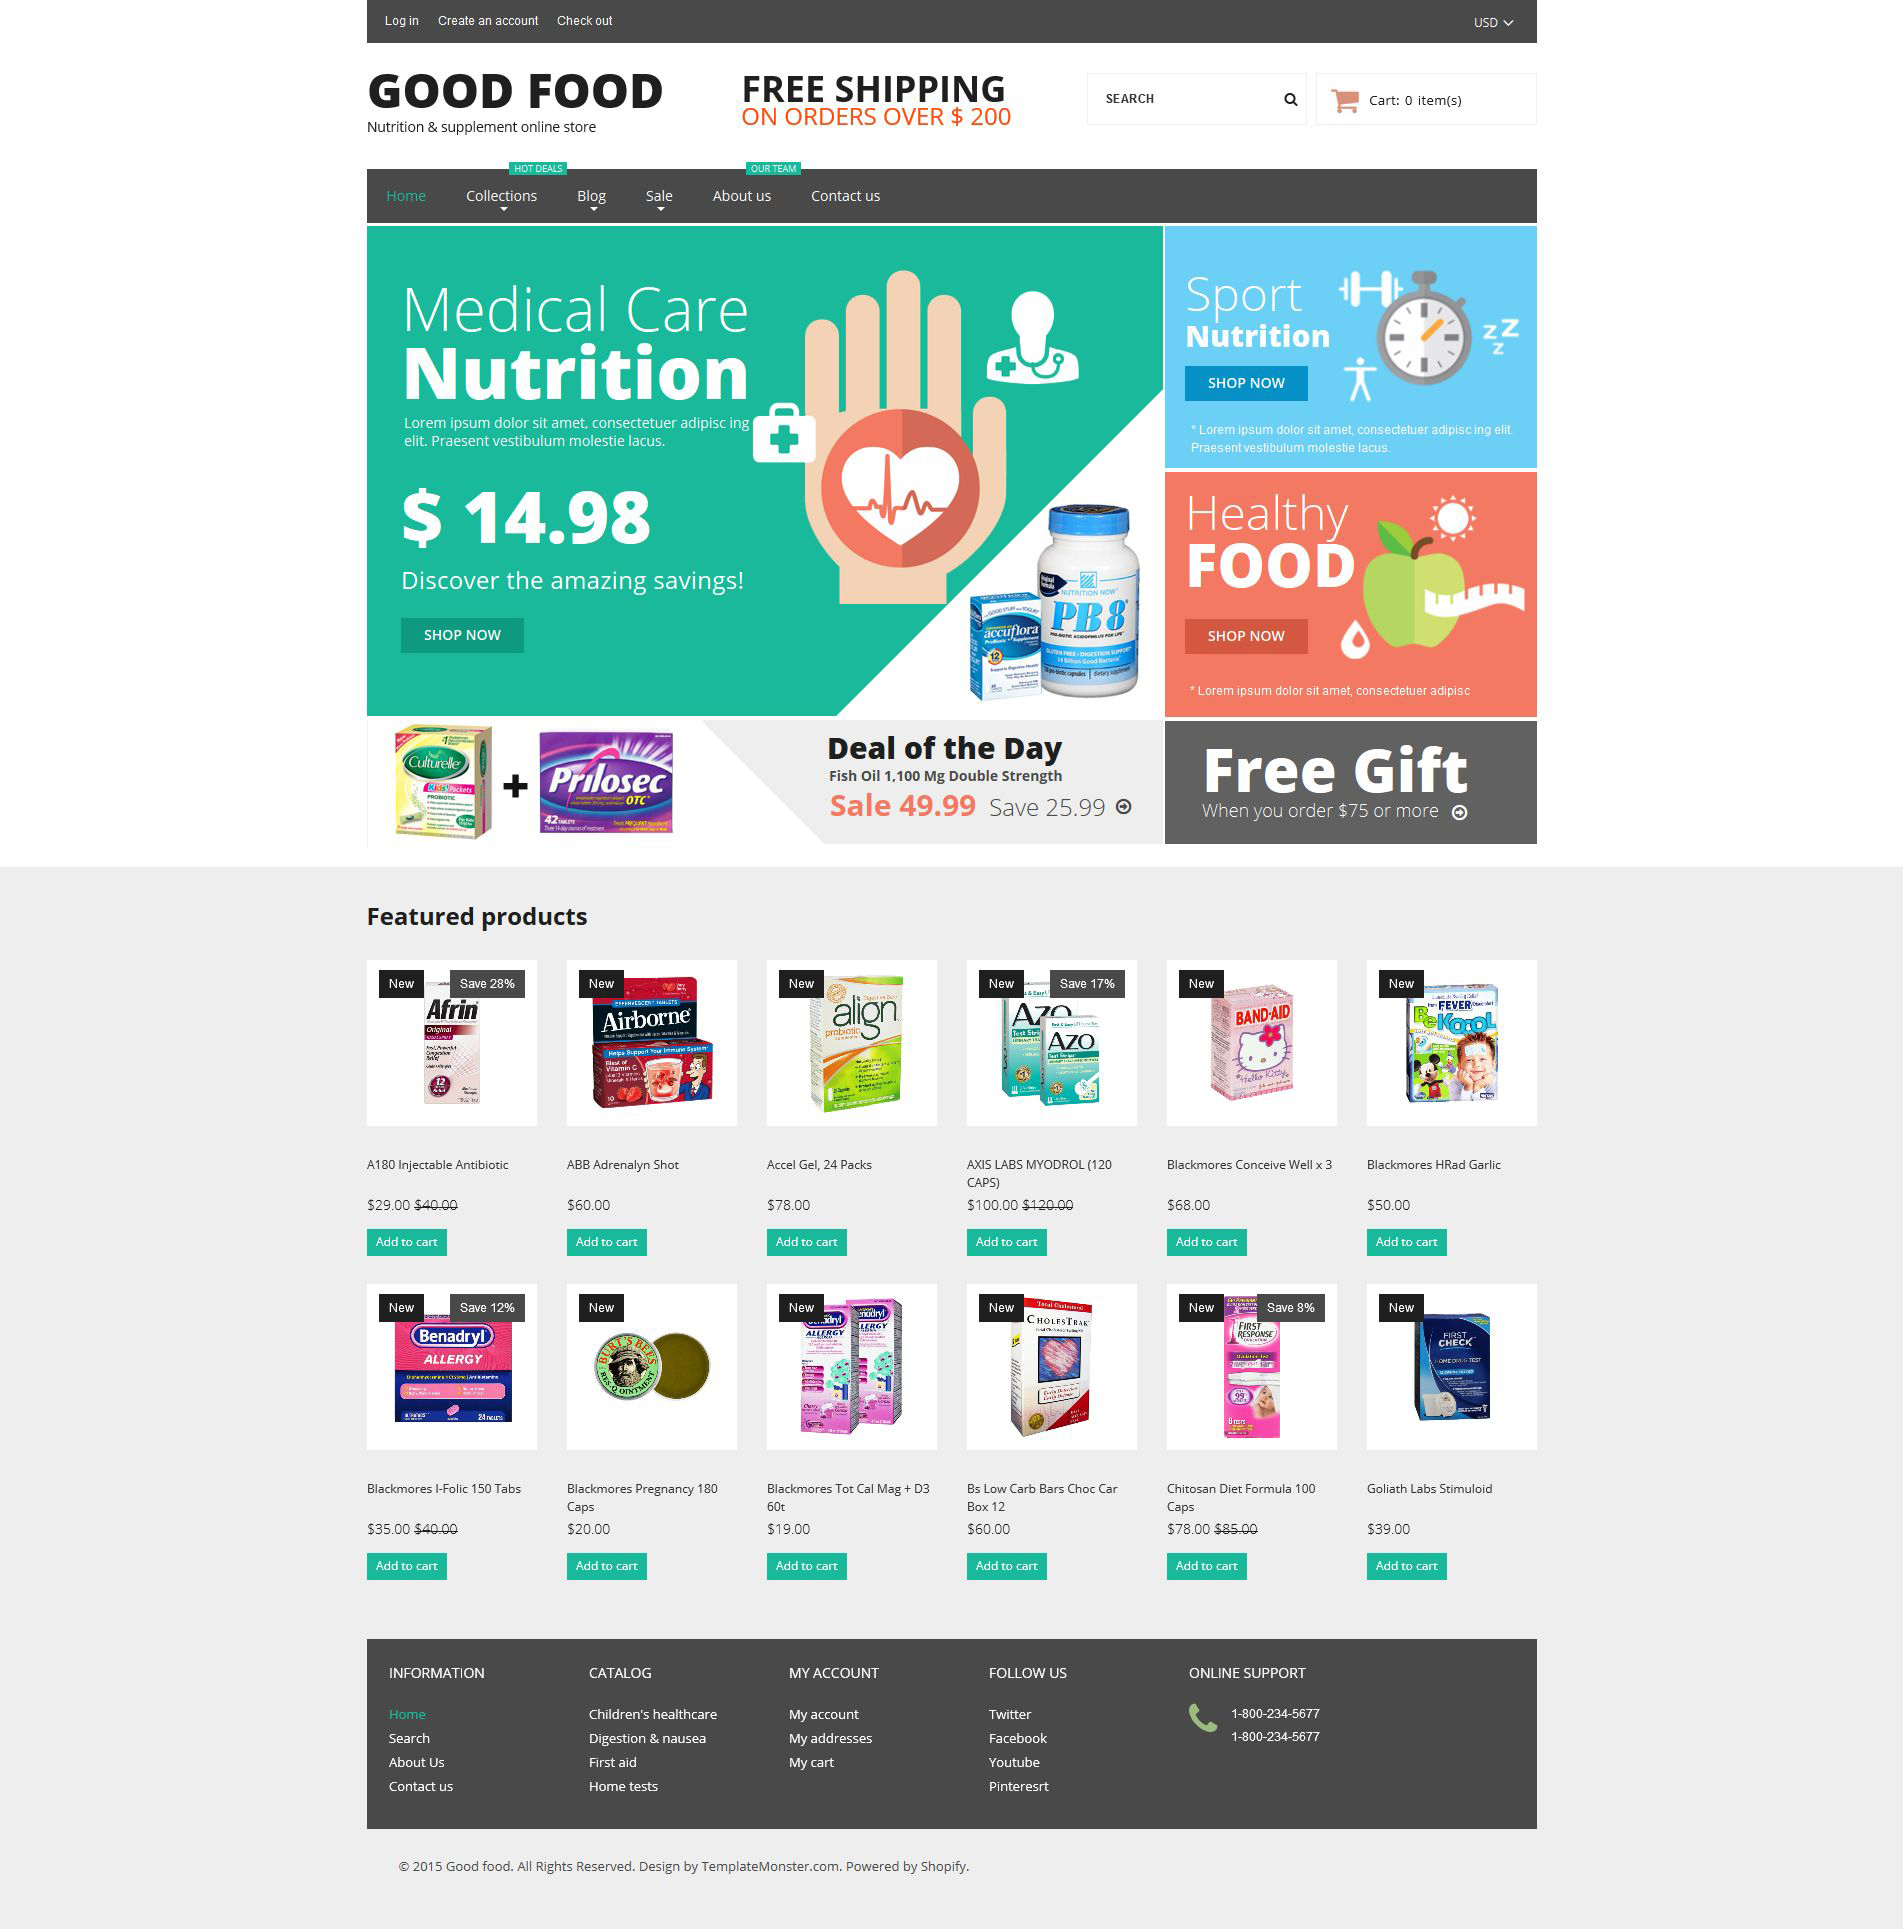 The Good Food Online Store Shopify Design 53081, one of the best Shopify themes of its kind (medical, most popular), also known as good food online store Shopify template, supermarket Shopify template, fruit Shopify template, natural company Shopify template, manufacturer Shopify template, manufacture Shopify template, production Shopify template, fresh Shopify template, beverage Shopify template, PSD template Shopify template, wine Shopify template, production Shopify template, cake Shopify template, cakes Shopify template, food Shopify template, feast Shopify template, tasty Shopify template, delicious Shopify template, gourmet Shopify template, vegetables Shopify template, fruits and related with good food online store, supermarket, fruit, natural company, manufacturer, manufacture, production, fresh, beverage, PSD template, wine, production, cake, cakes, food, feast, tasty, delicious, gourmet, vegetables, fruits, etc.